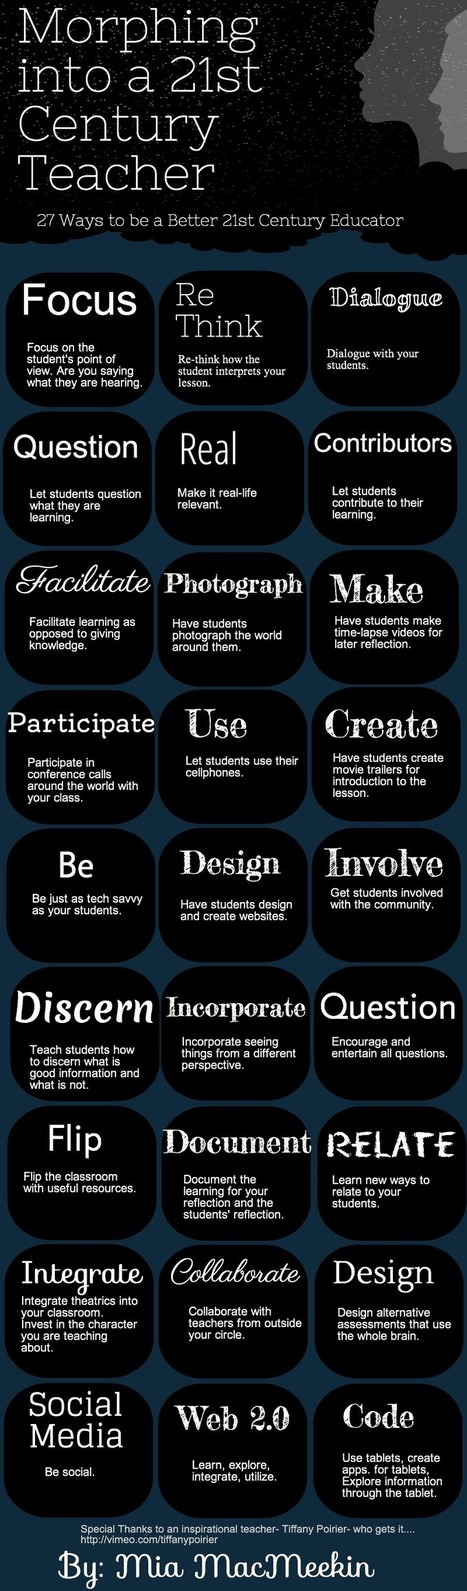 The 27 Characteristics of A 21st Century Teacher - Infographic | SchooL-i-Tecs 101 | Scoop.it